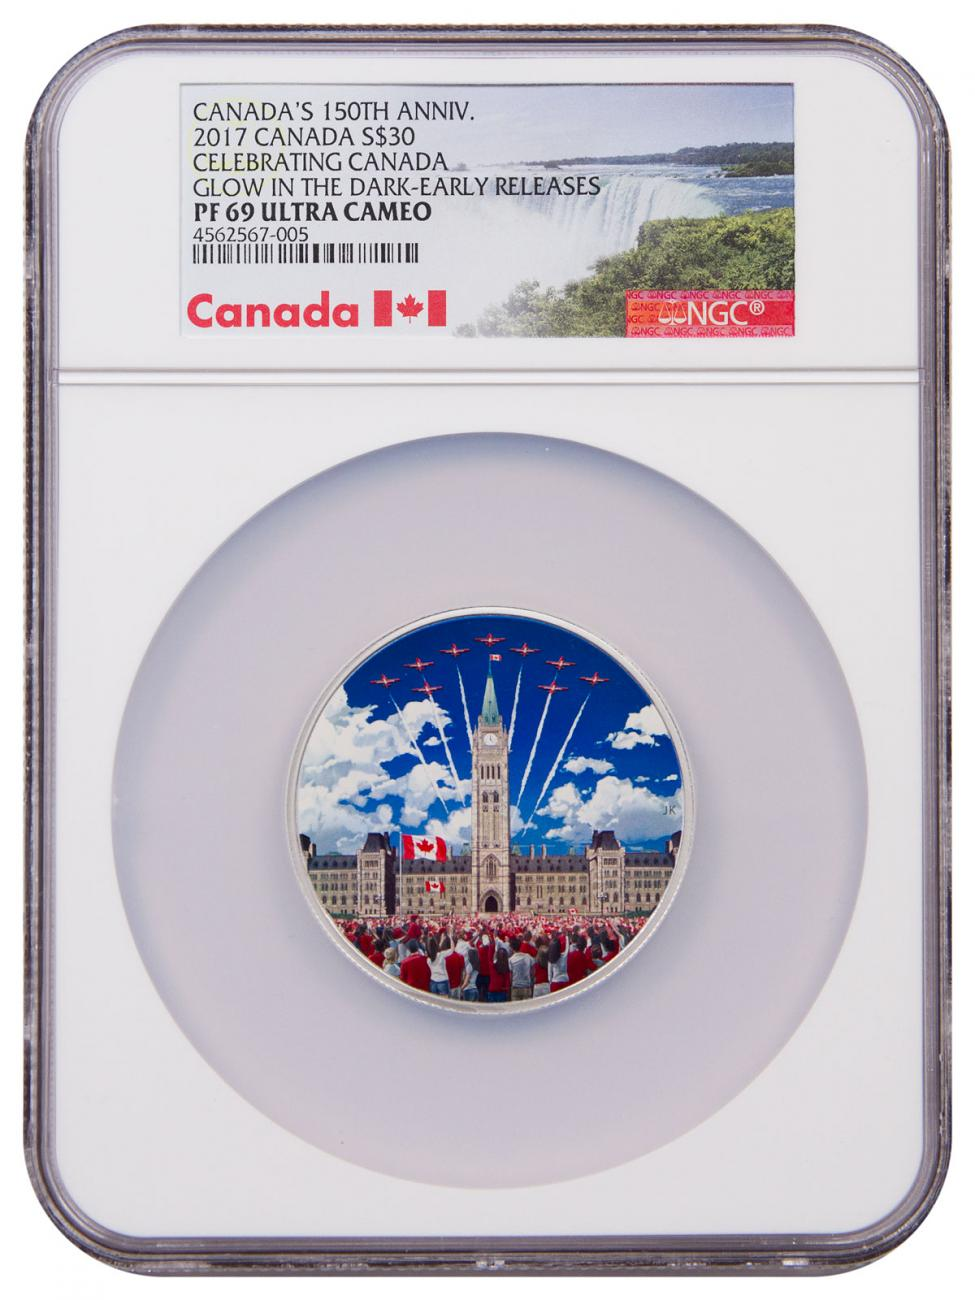 2017 Canada Celebrating Canada 2 oz Silver Colorized Glow in the Dark Proof $30 Coin NGC PF69 UC ER Exclusive Canada Label